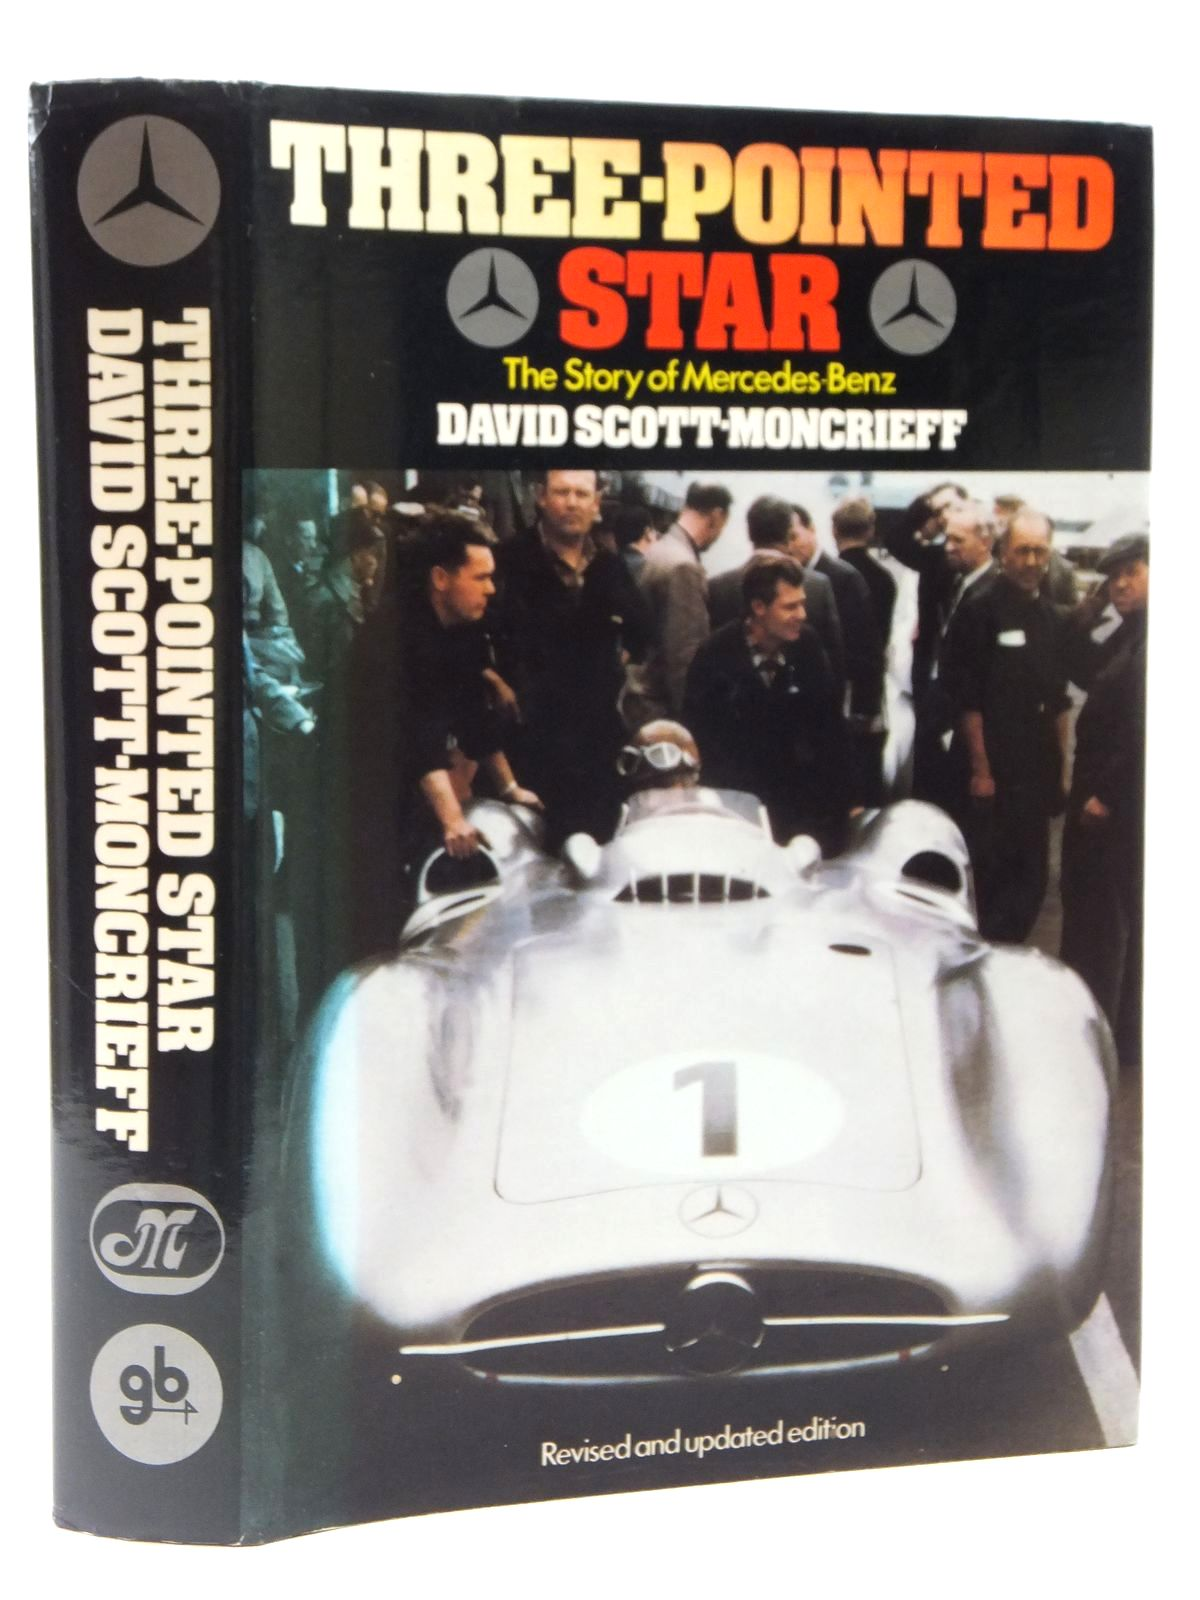 Photo of THREE-POINTED STAR THE STORY OF MERCEDES-BENZ written by Scott-Moncrieff, David published by Gentry Books (STOCK CODE: 2122278)  for sale by Stella & Rose's Books